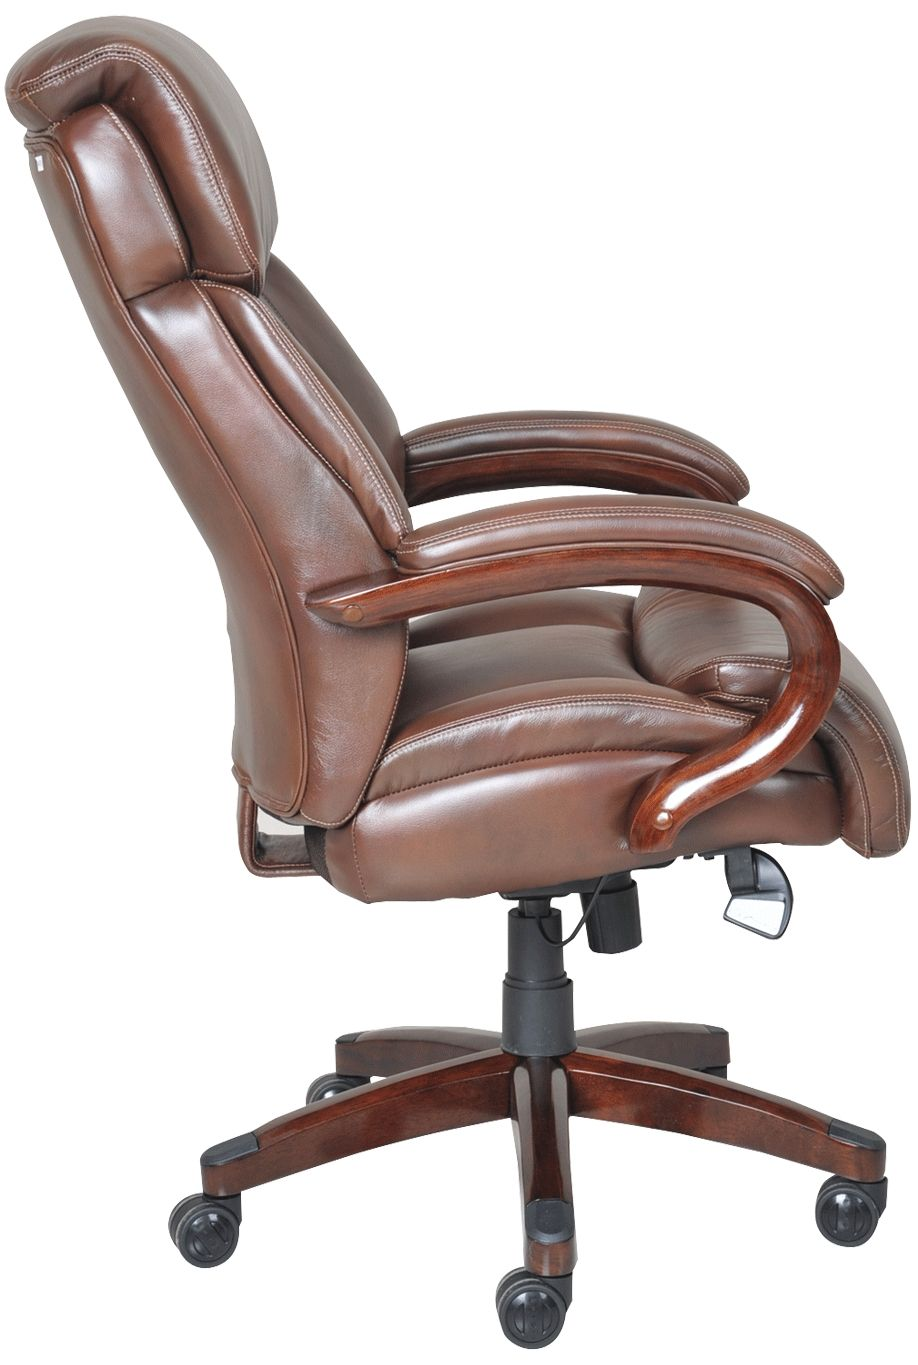 Lazyboy Office Chair Staples